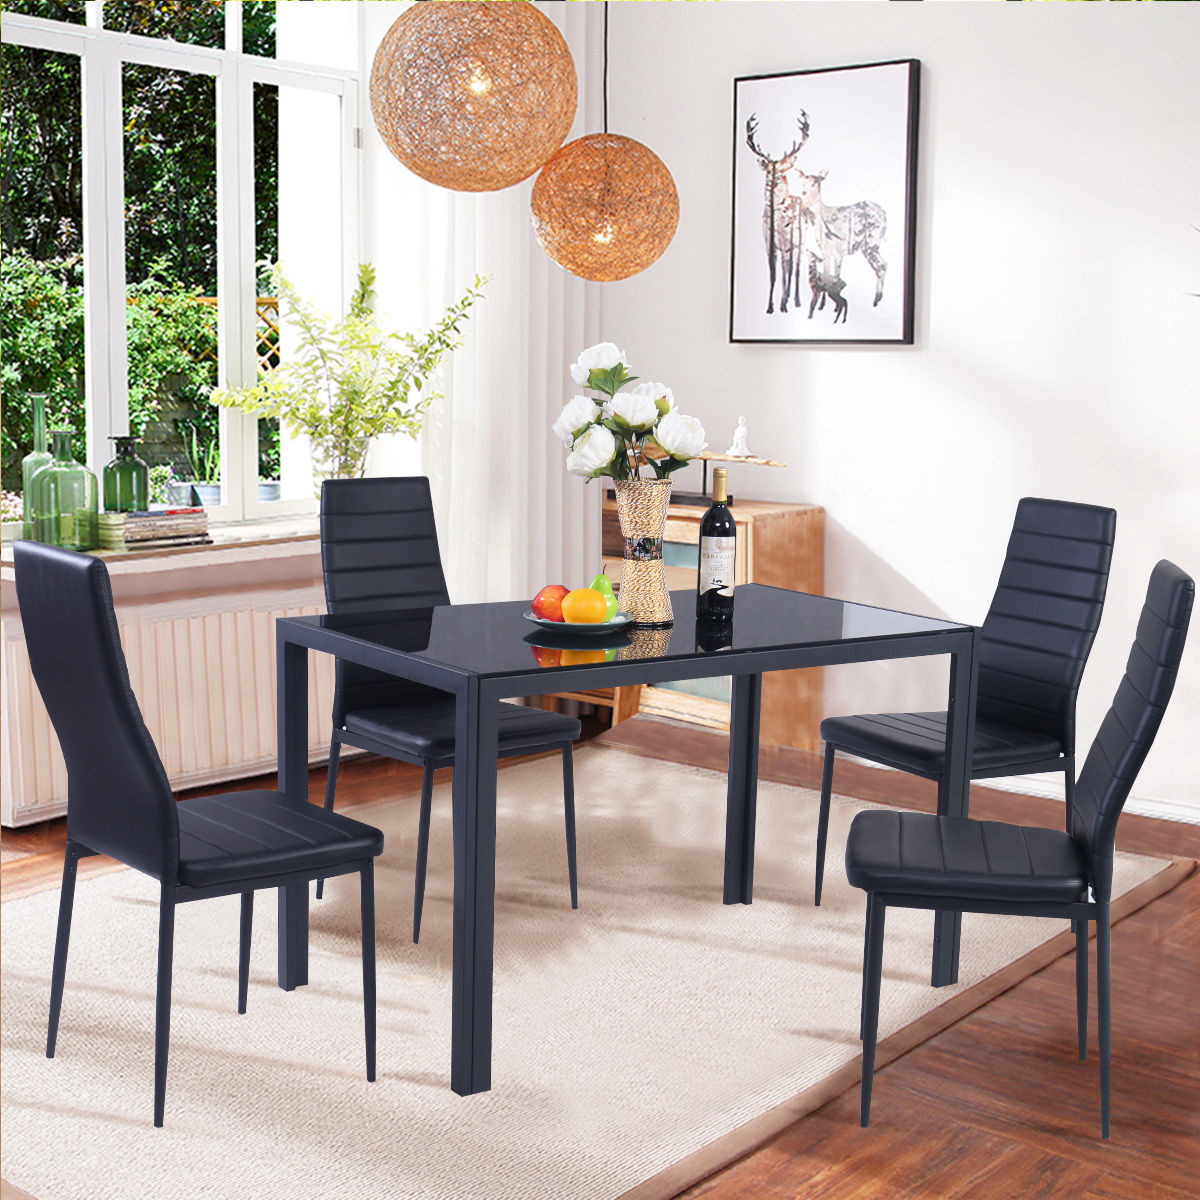 Costway 5 Piece Kitchen Dining Set Glass Metal Table And 4 Chairs Within Well Liked 5 Piece Dining Sets (View 11 of 25)